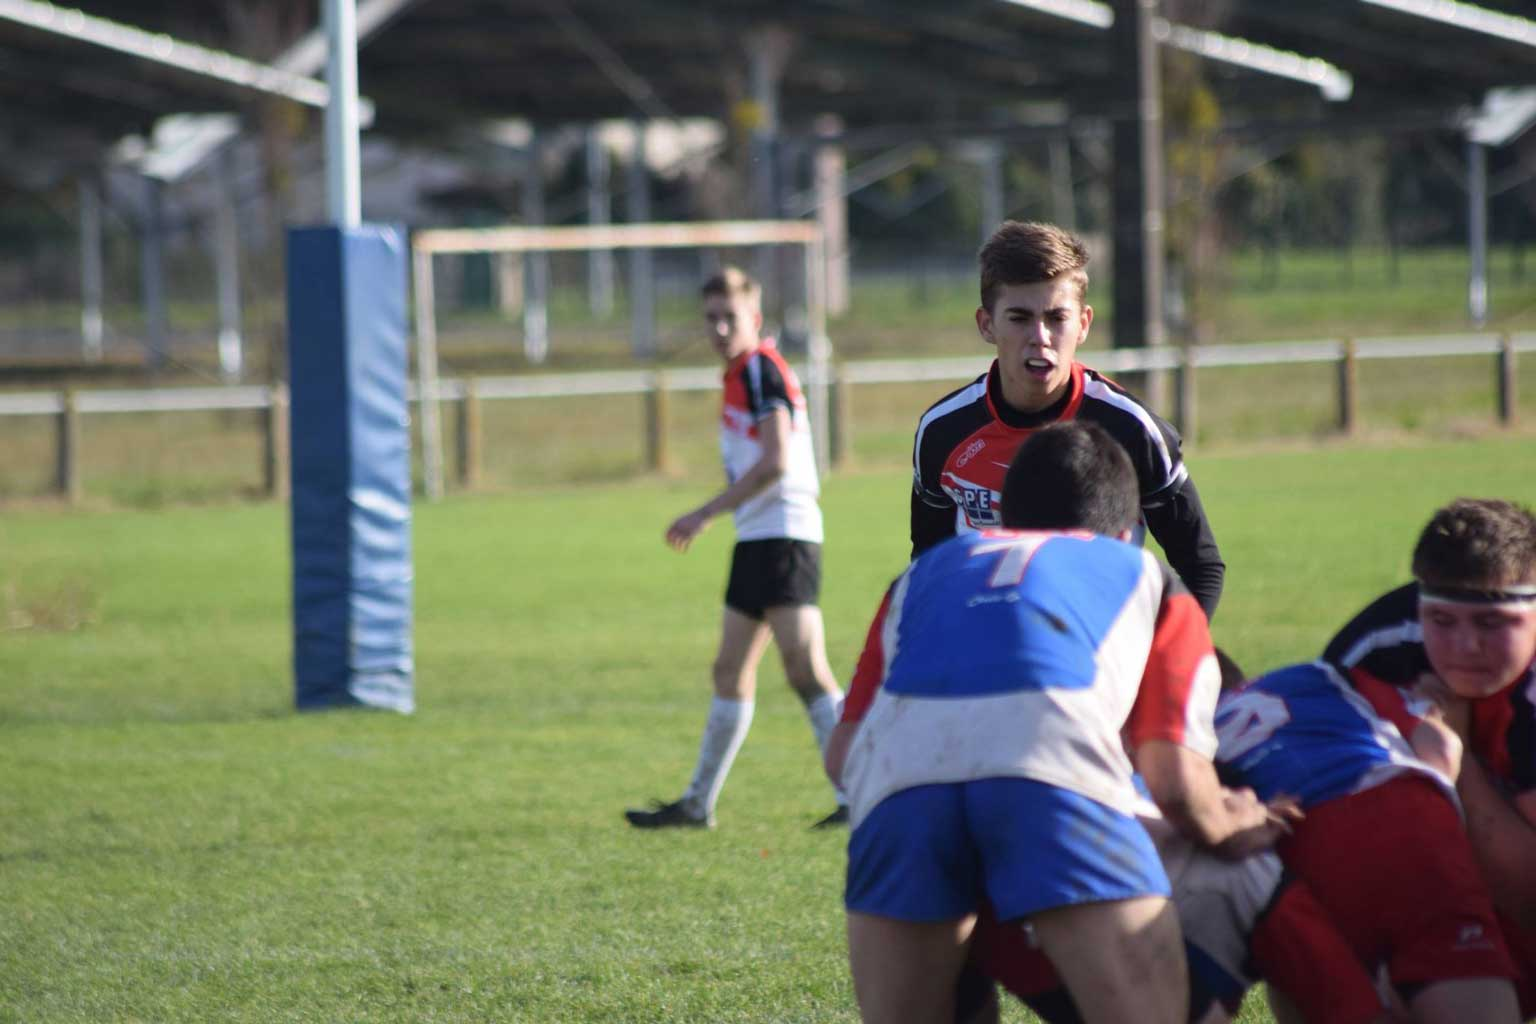 © Maeva Franco - U16 - Graulhet vs Alban/Valence/Lacaune - Photo 21